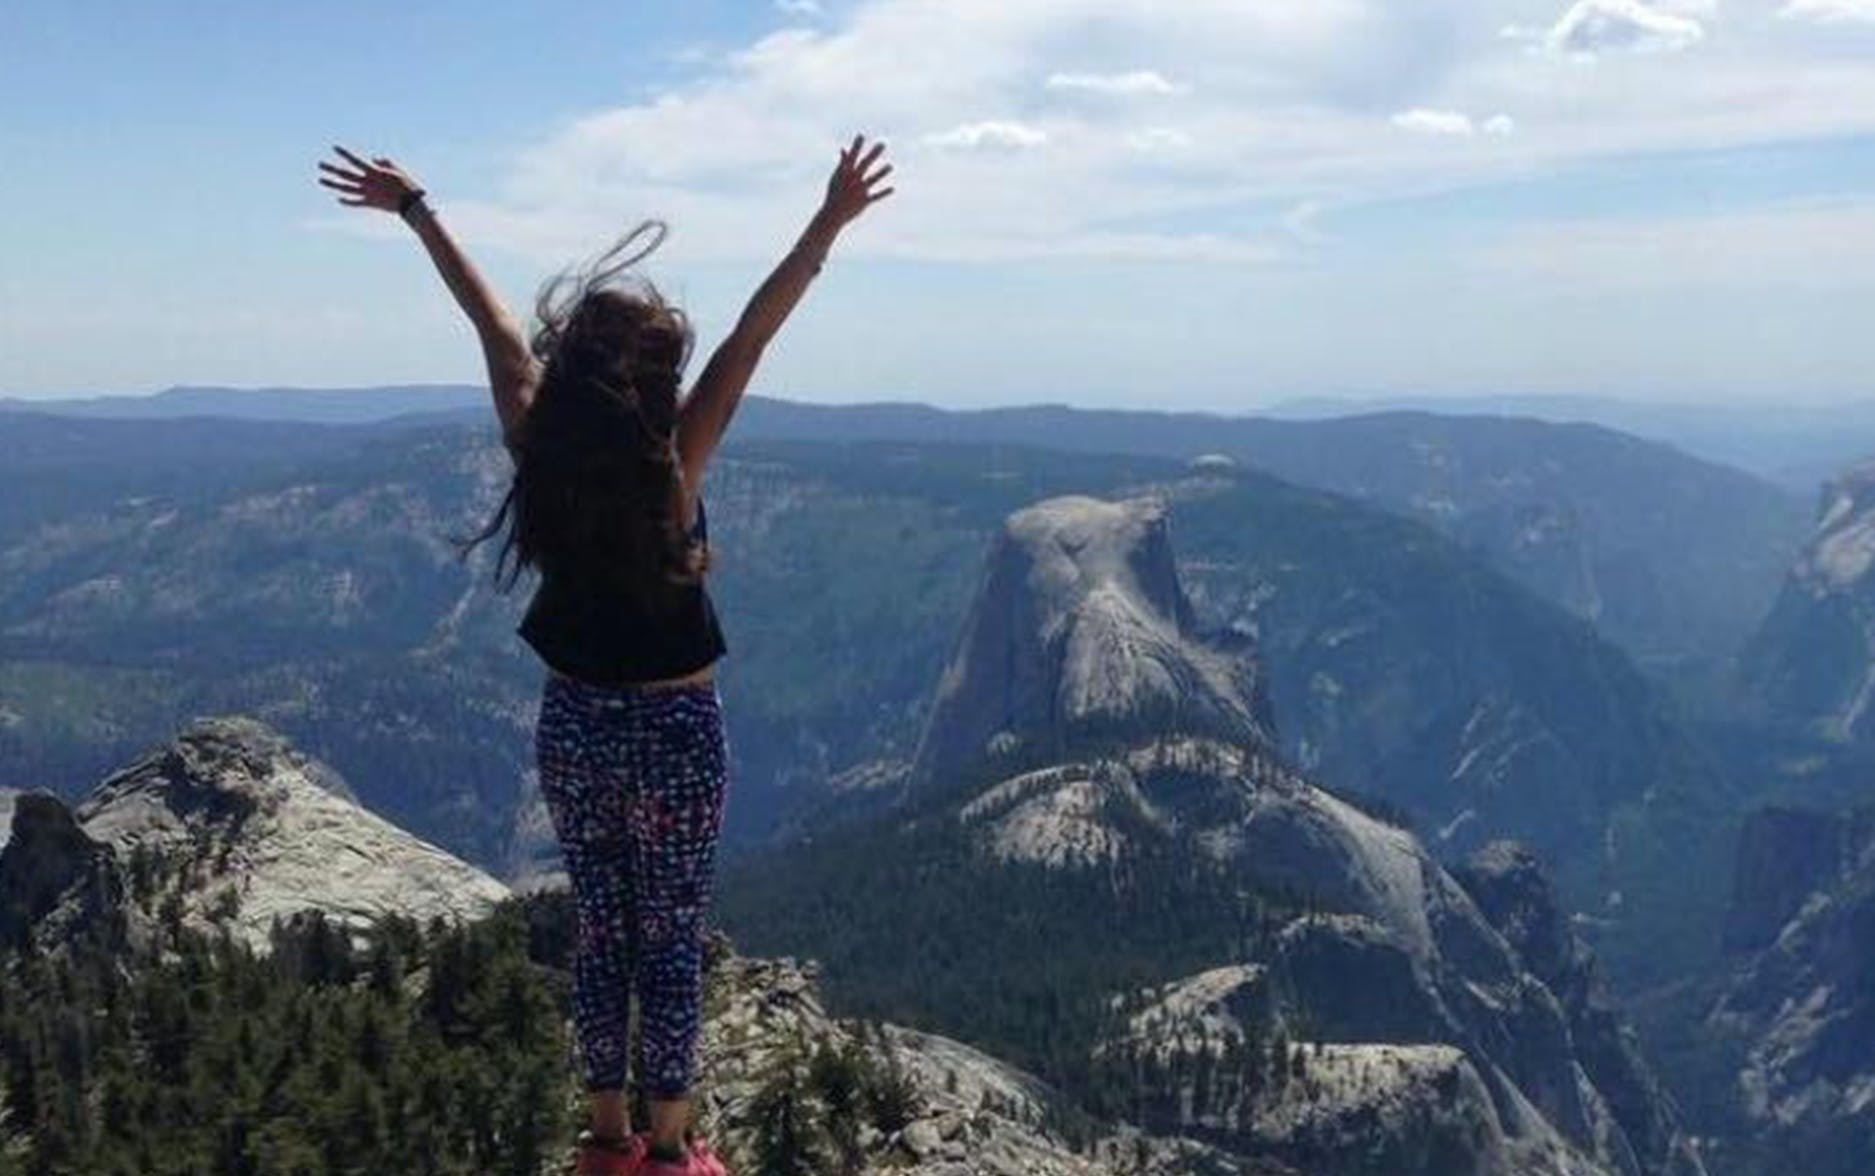 An image of Nancy Thomas at Yosemite. Nancy is Transcend's People Operations Manager.